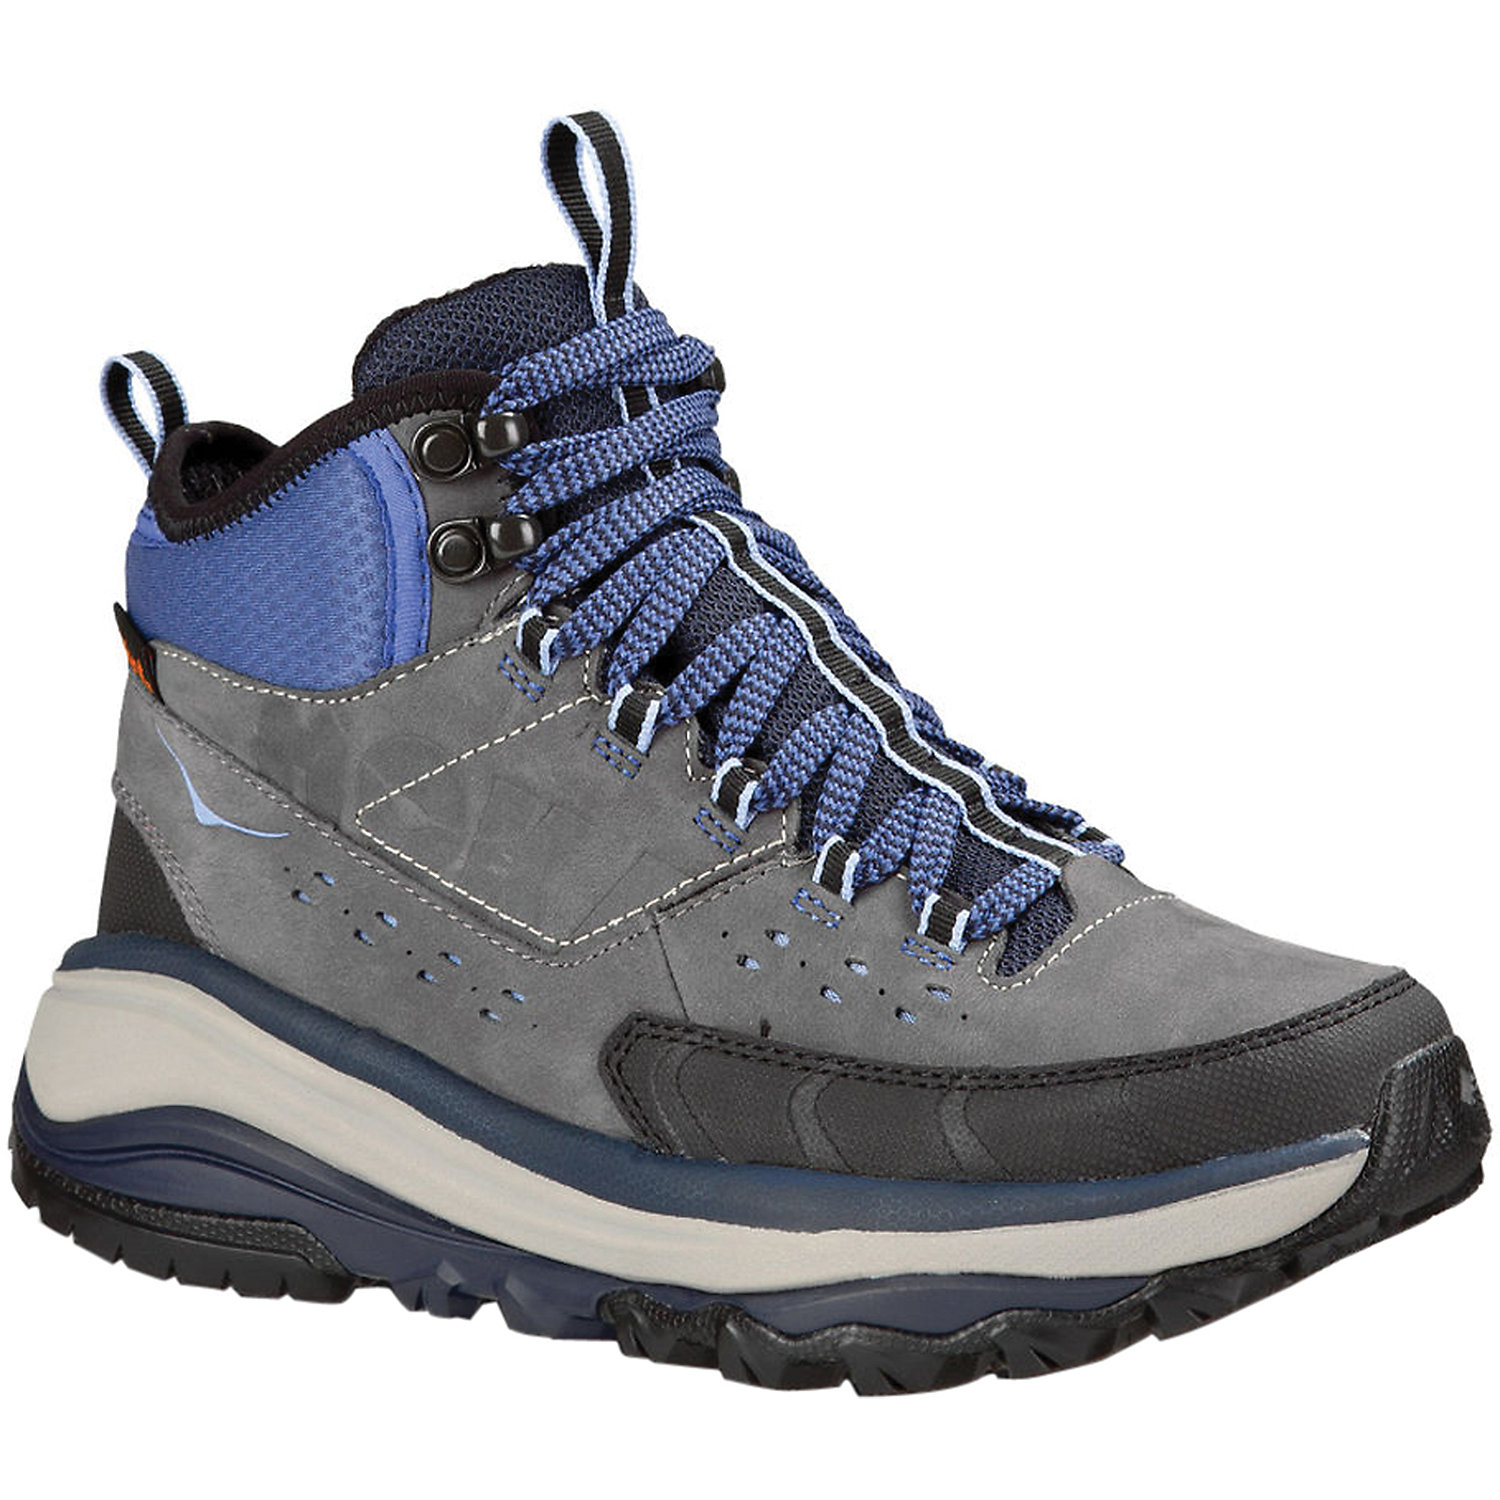 separation shoes 748ad f022f Hoka One One Women's Tor Summit Mid Waterproof Boot